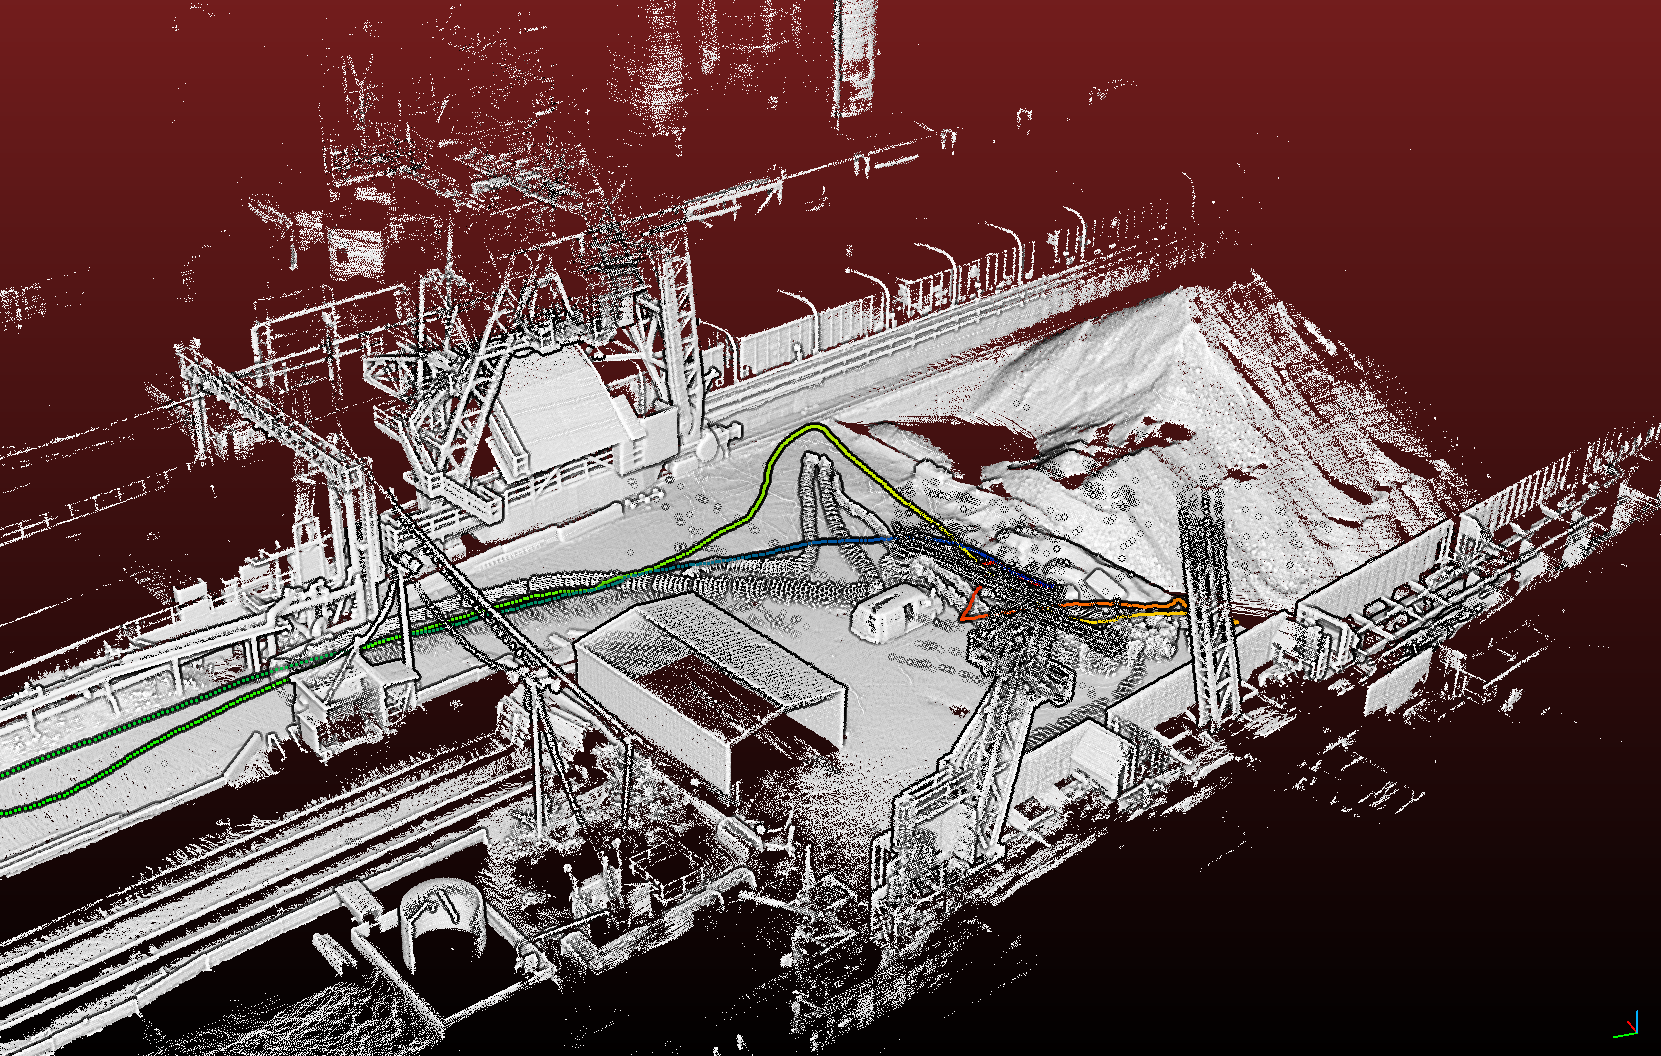 Point Cloud of Complex Environment